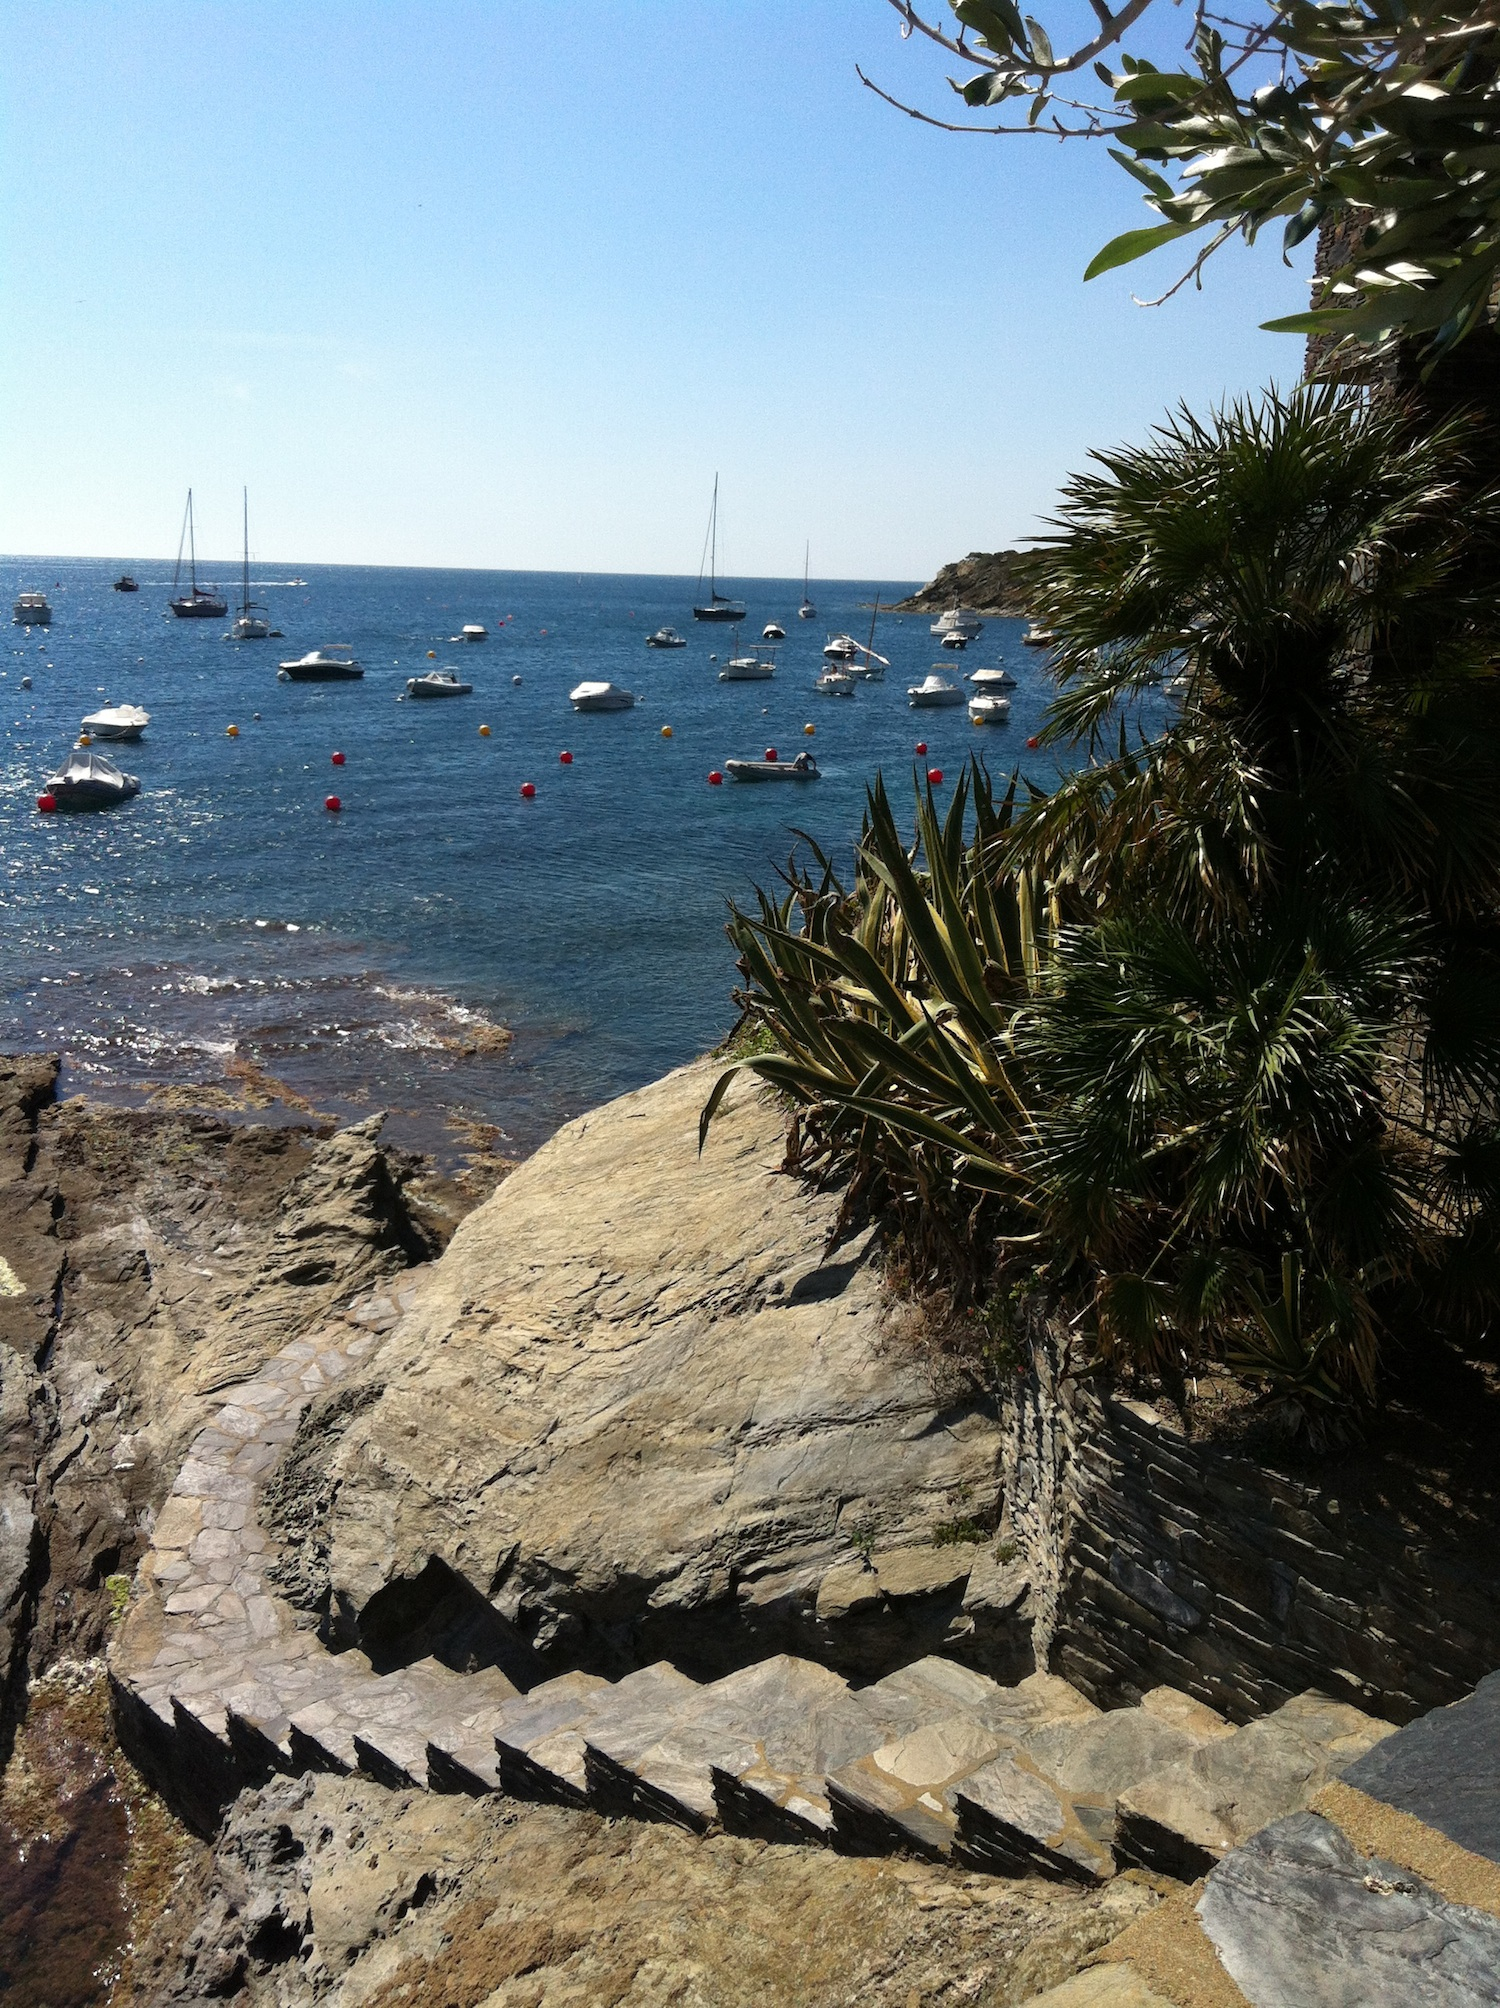 View out over the harbor in Cadaques